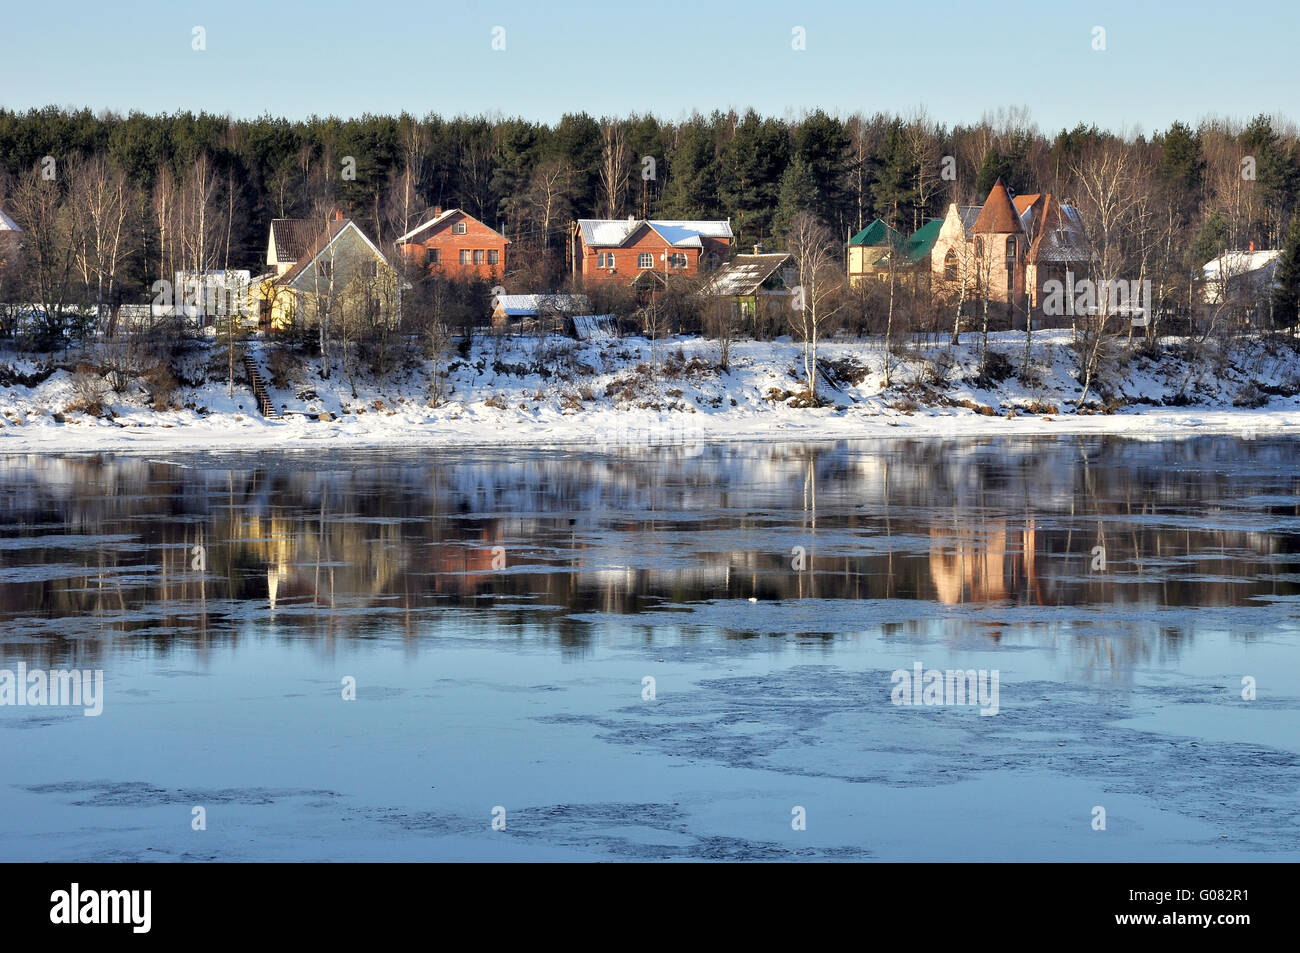 the River Neva.Russia Leningrad region,winter,Ivanovskie rapids - Stock Image